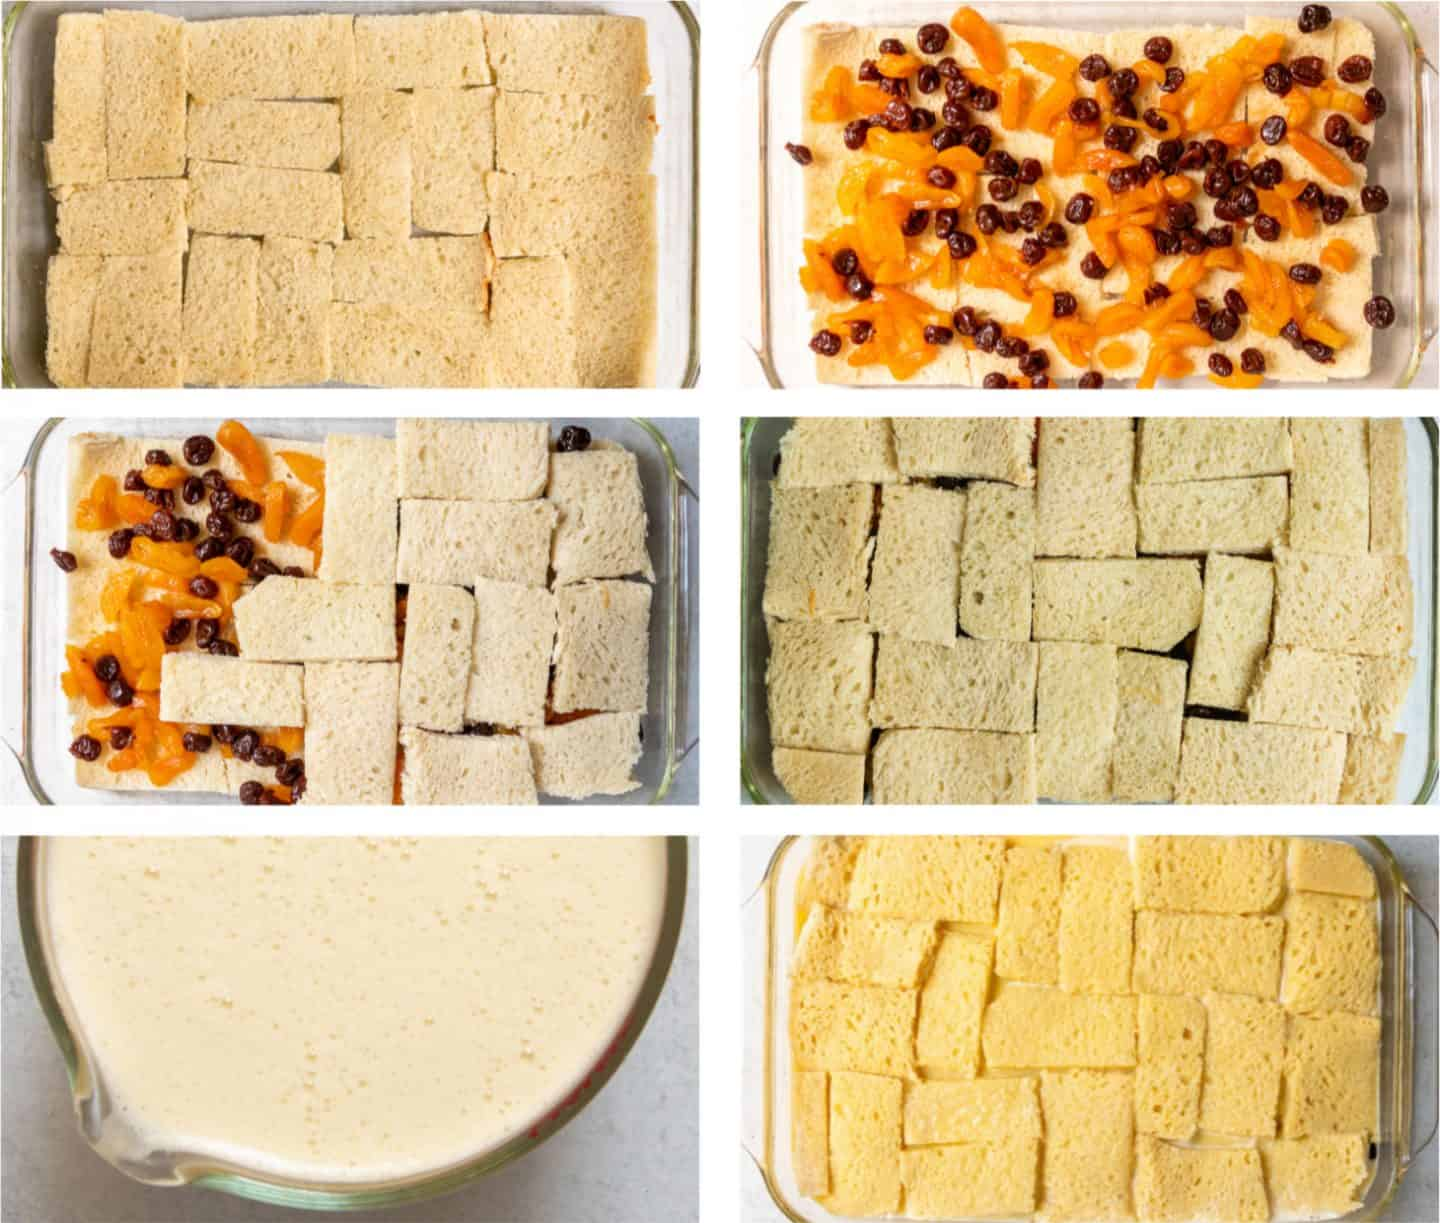 Steps of how to assemble the bread pudding, adding fresh custard